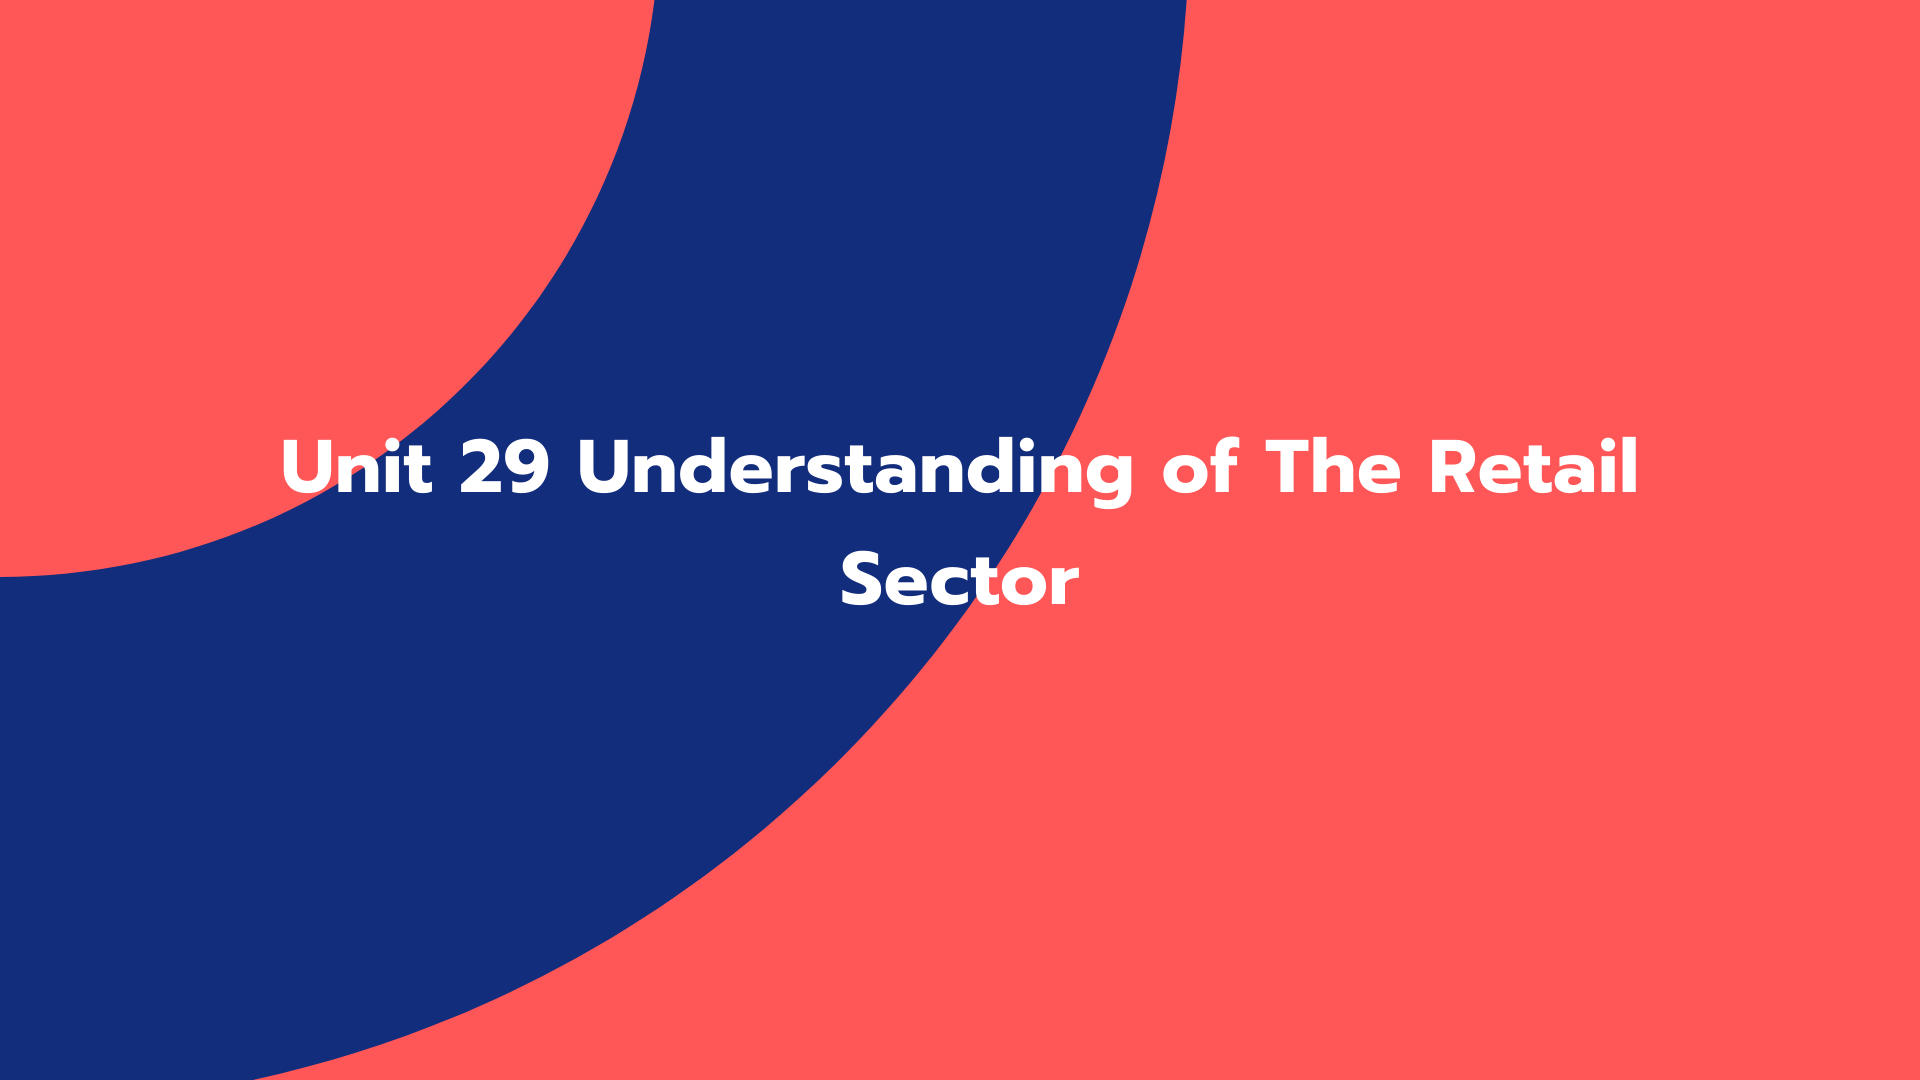 Unit 29 Understanding of The Retail Sector